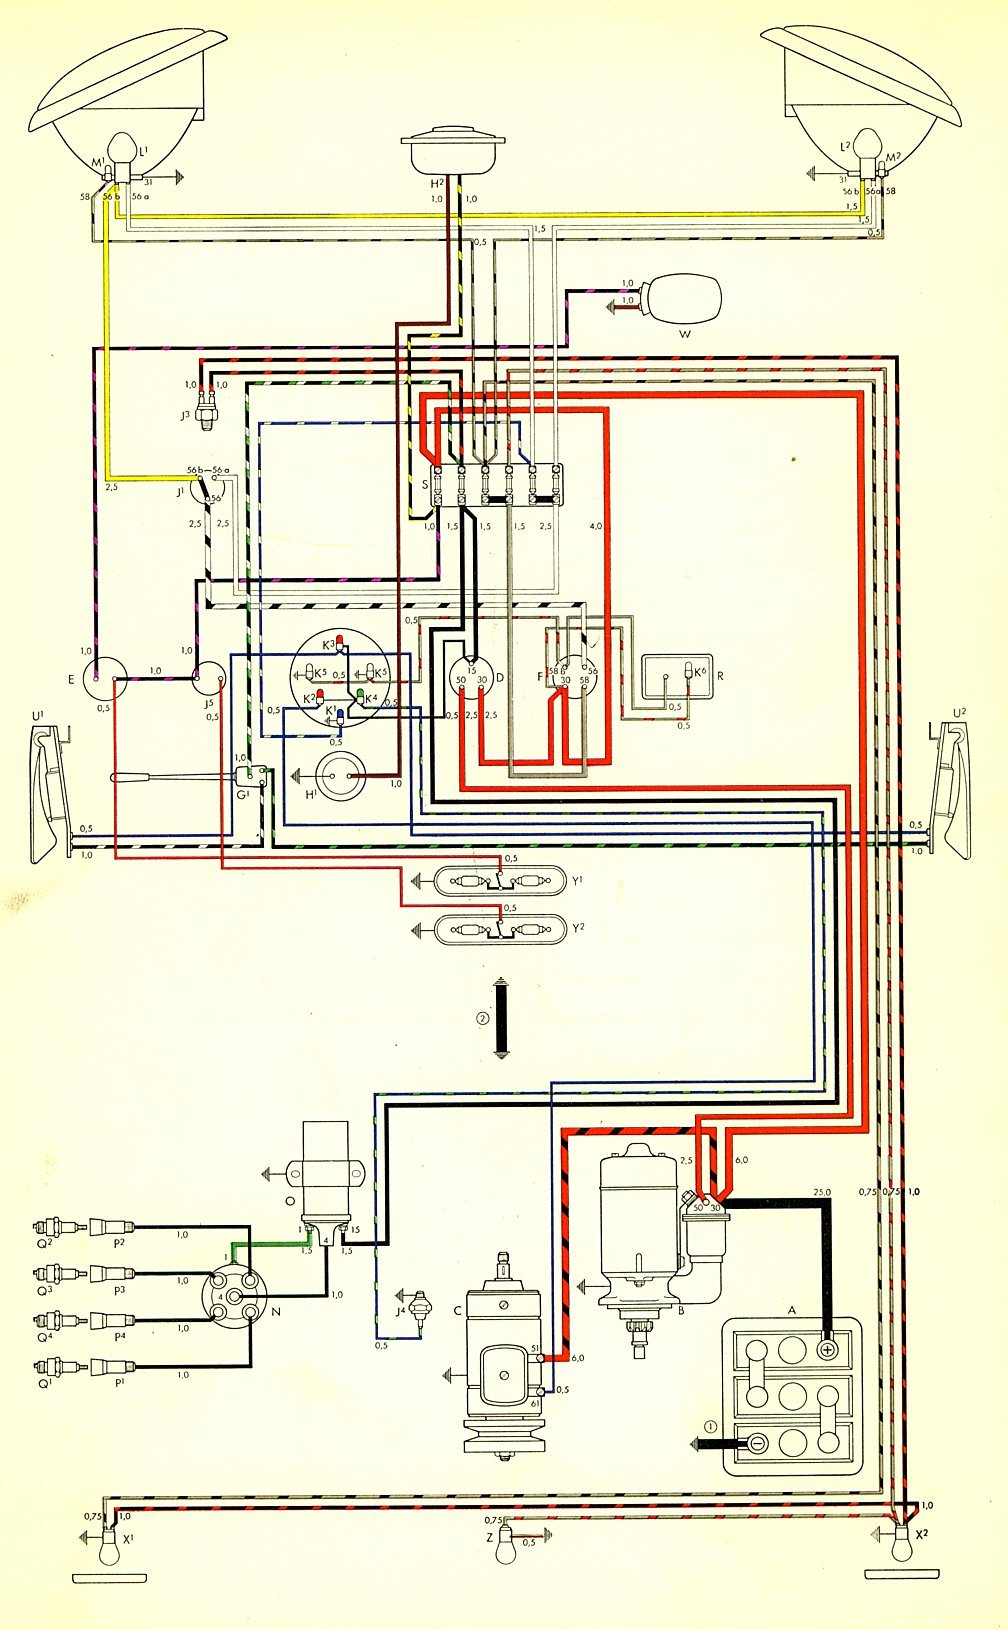 79 Corvette Antenna Wiring Diagram 1963 Vw Engine Archive Of Automotive Van Another Blog About U2022 Rh Ok2 Infoservice Ru